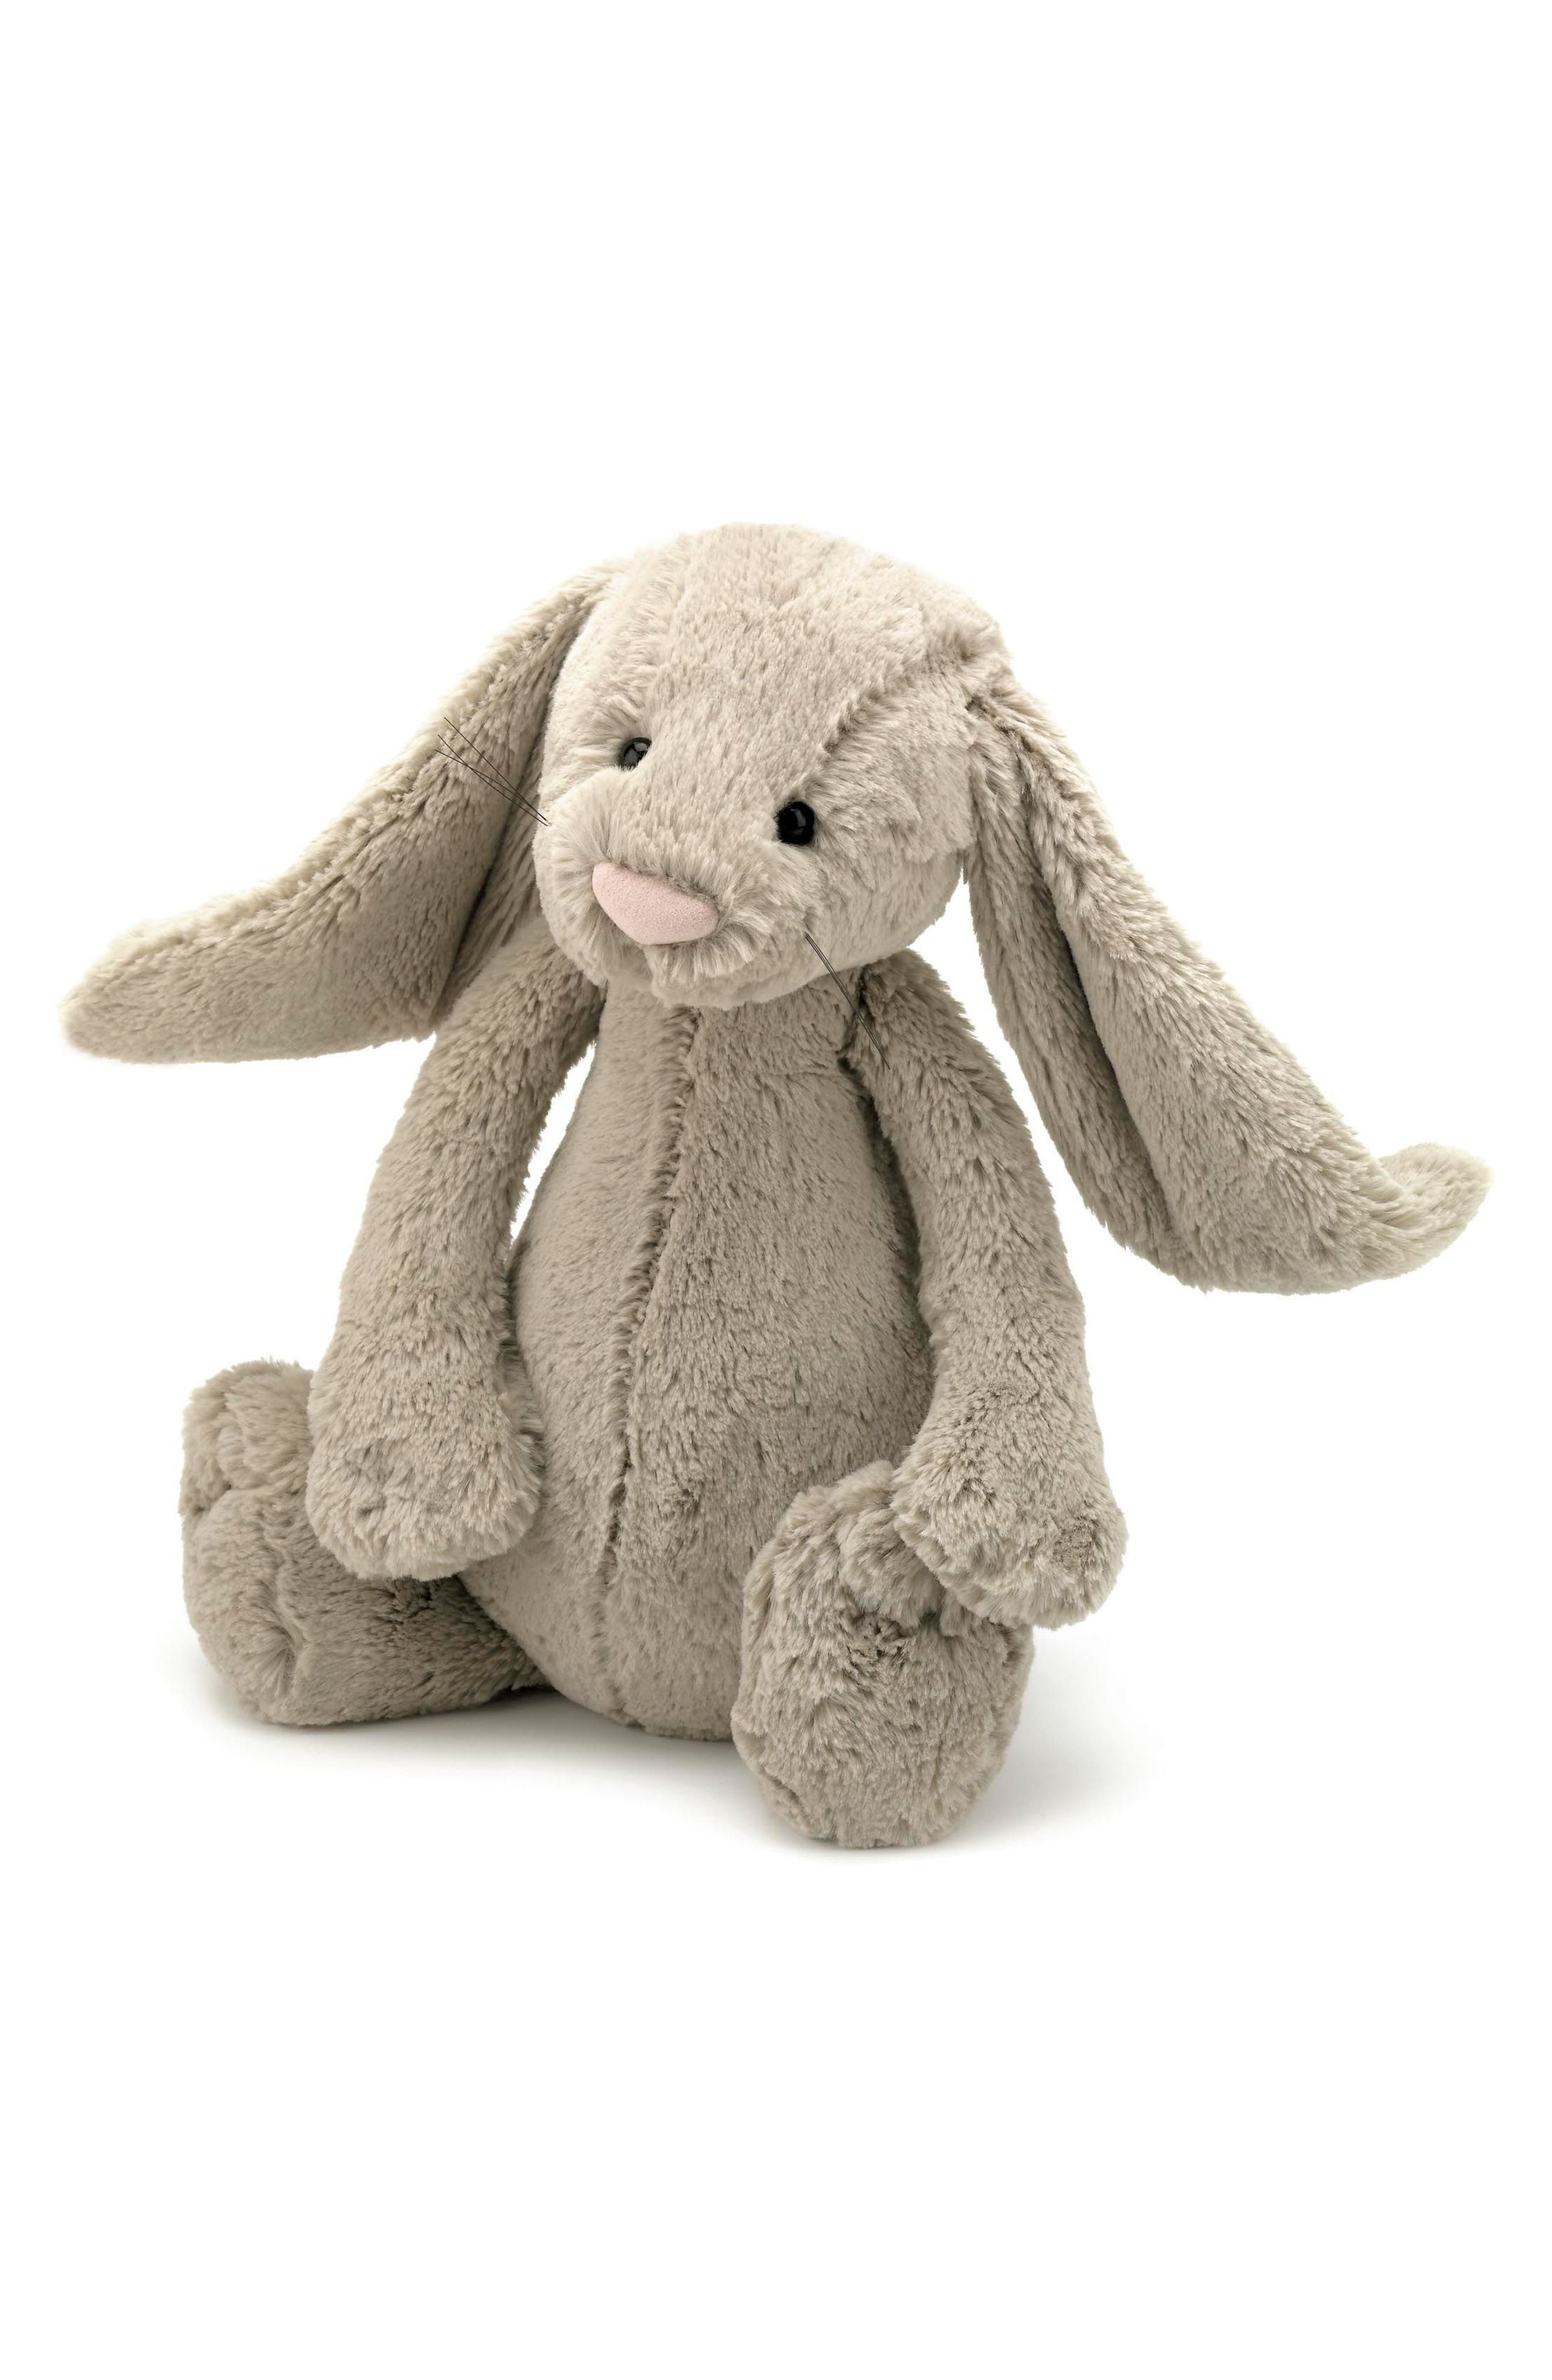 Main Image - Jellycat 'Large Bashful Bunny' Stuffed Animal